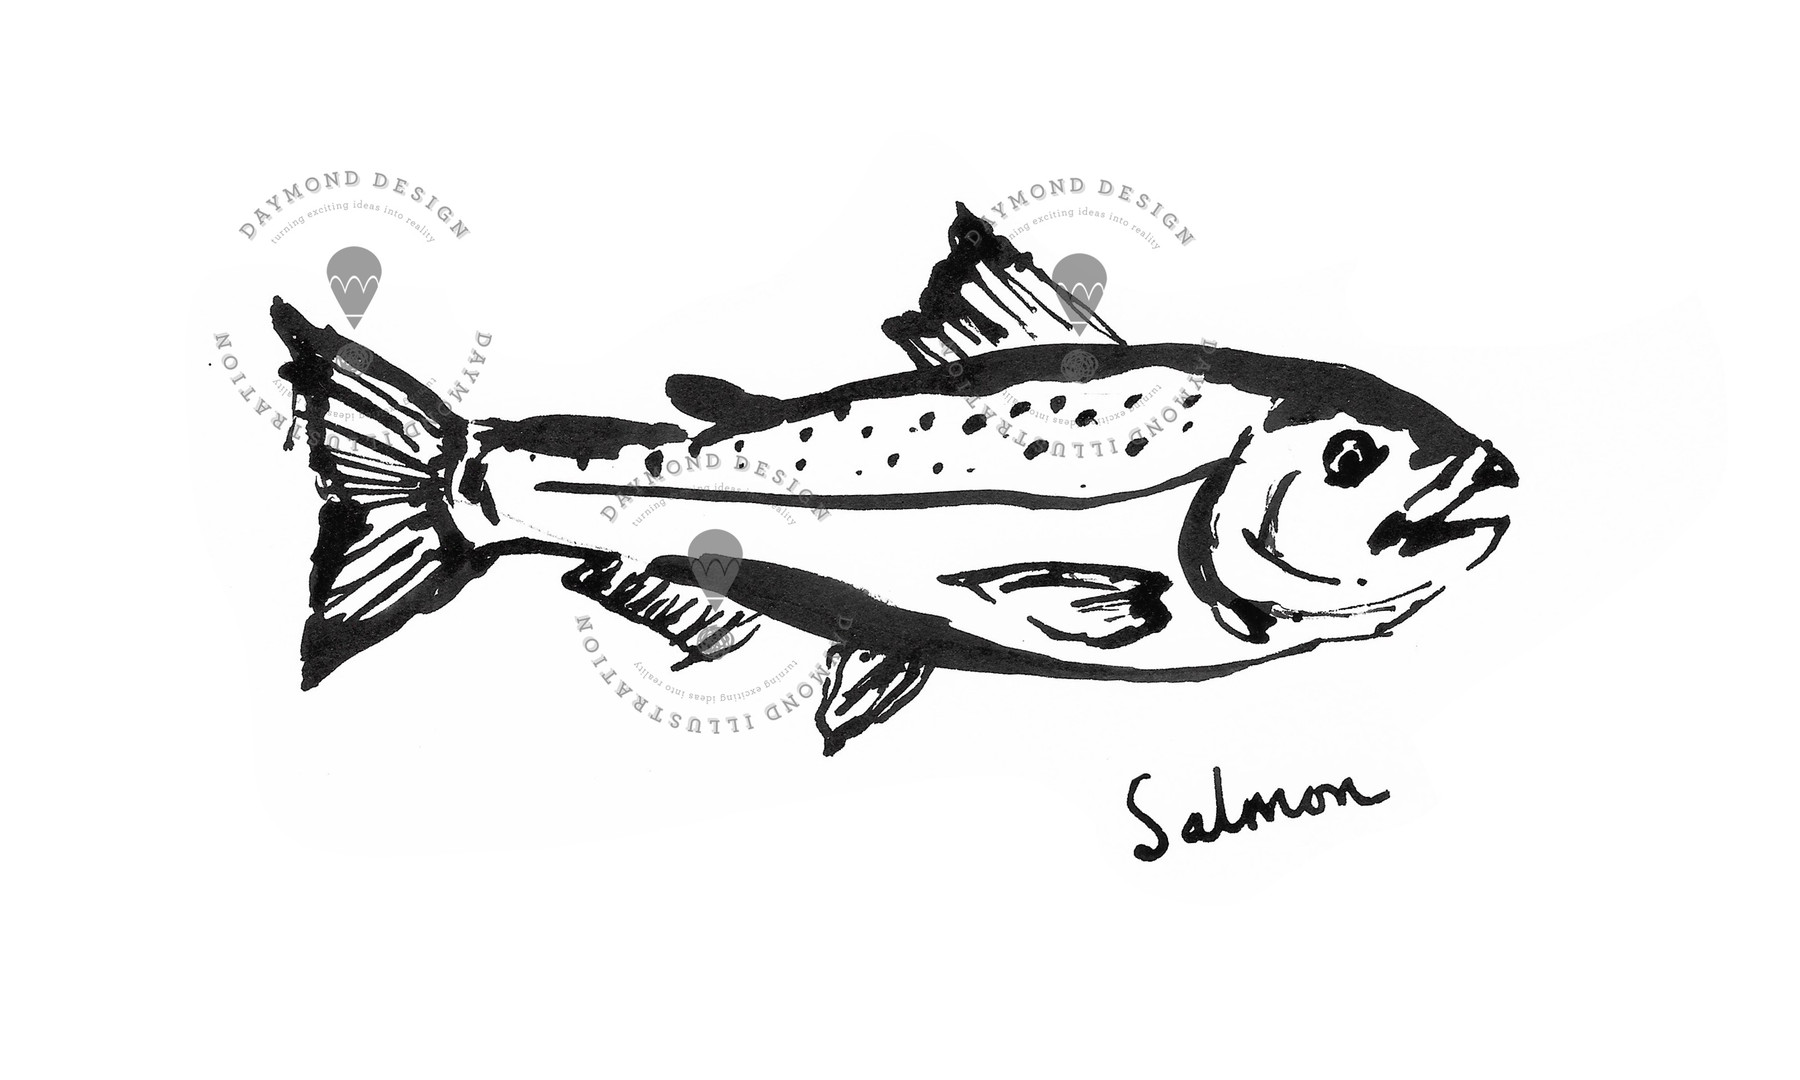 salmon fish brush ink food illustration of seafood by Jenny Daymond Design and illustration